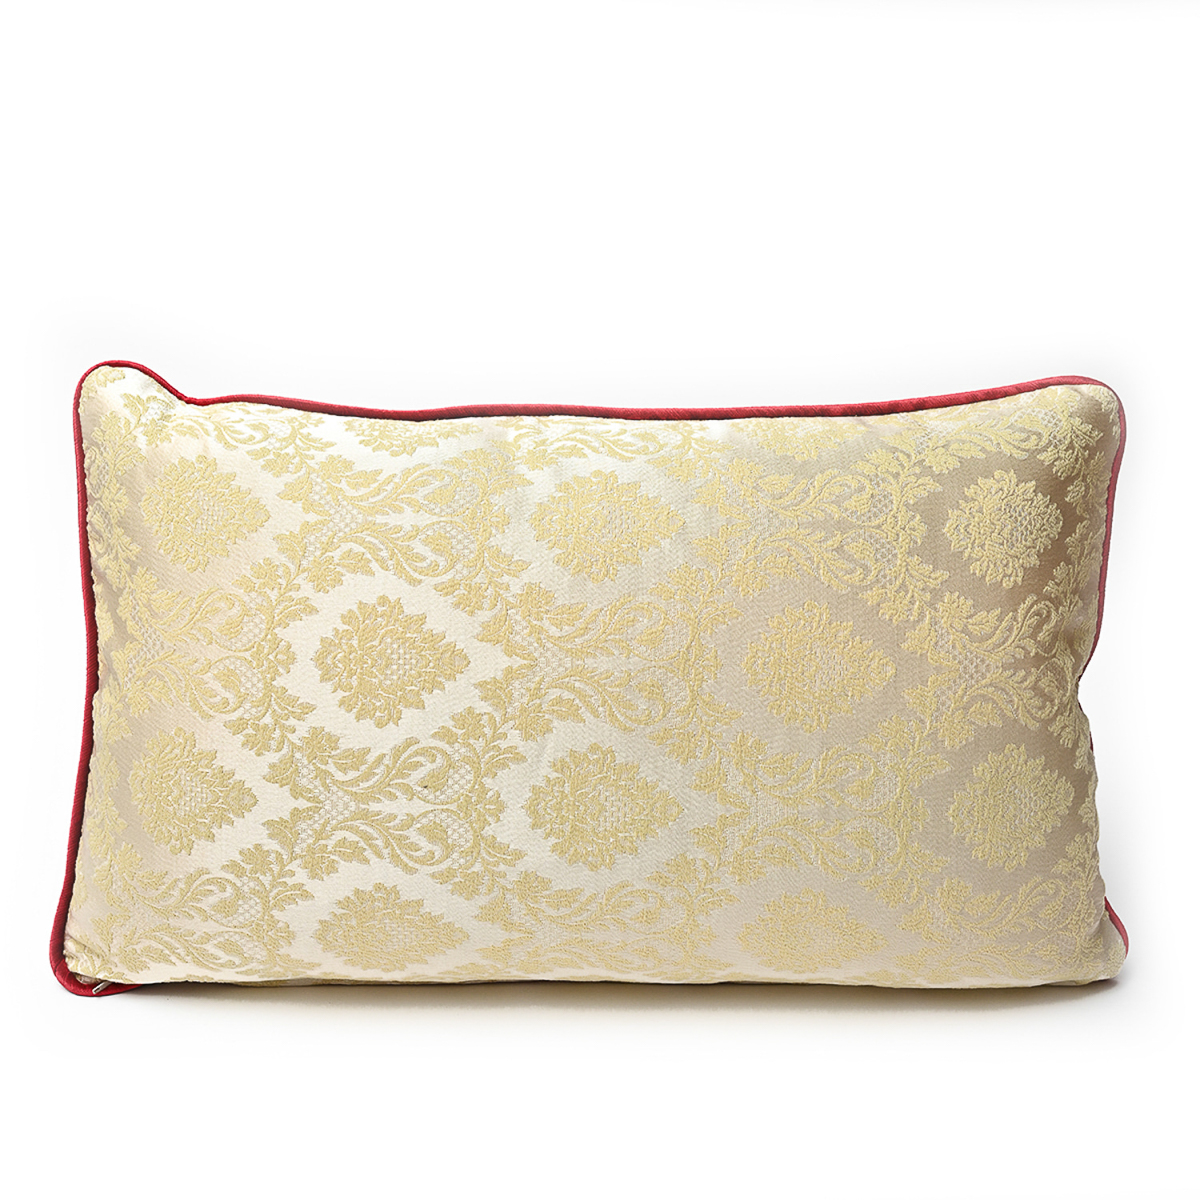 Come to the Fair – Single Bed Pillow – 28″ x 18″